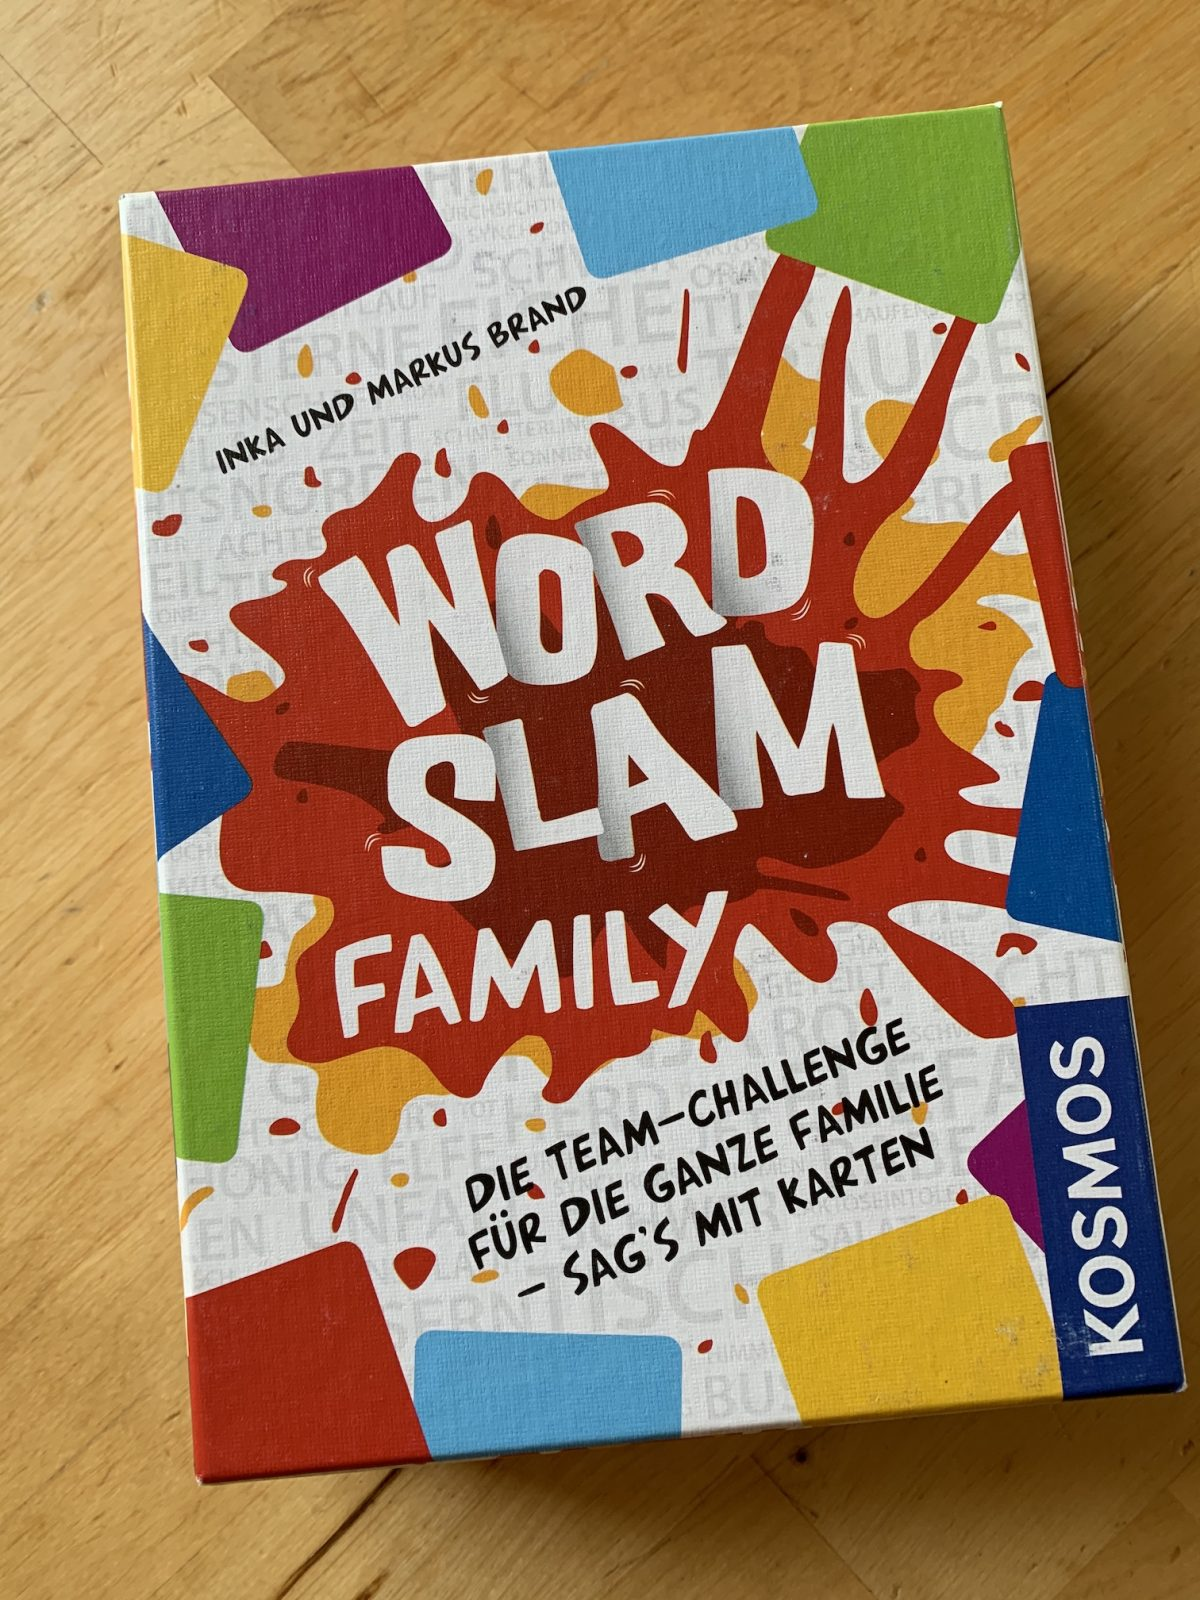 Game-Based Learning in der Schule: Word Slam Family